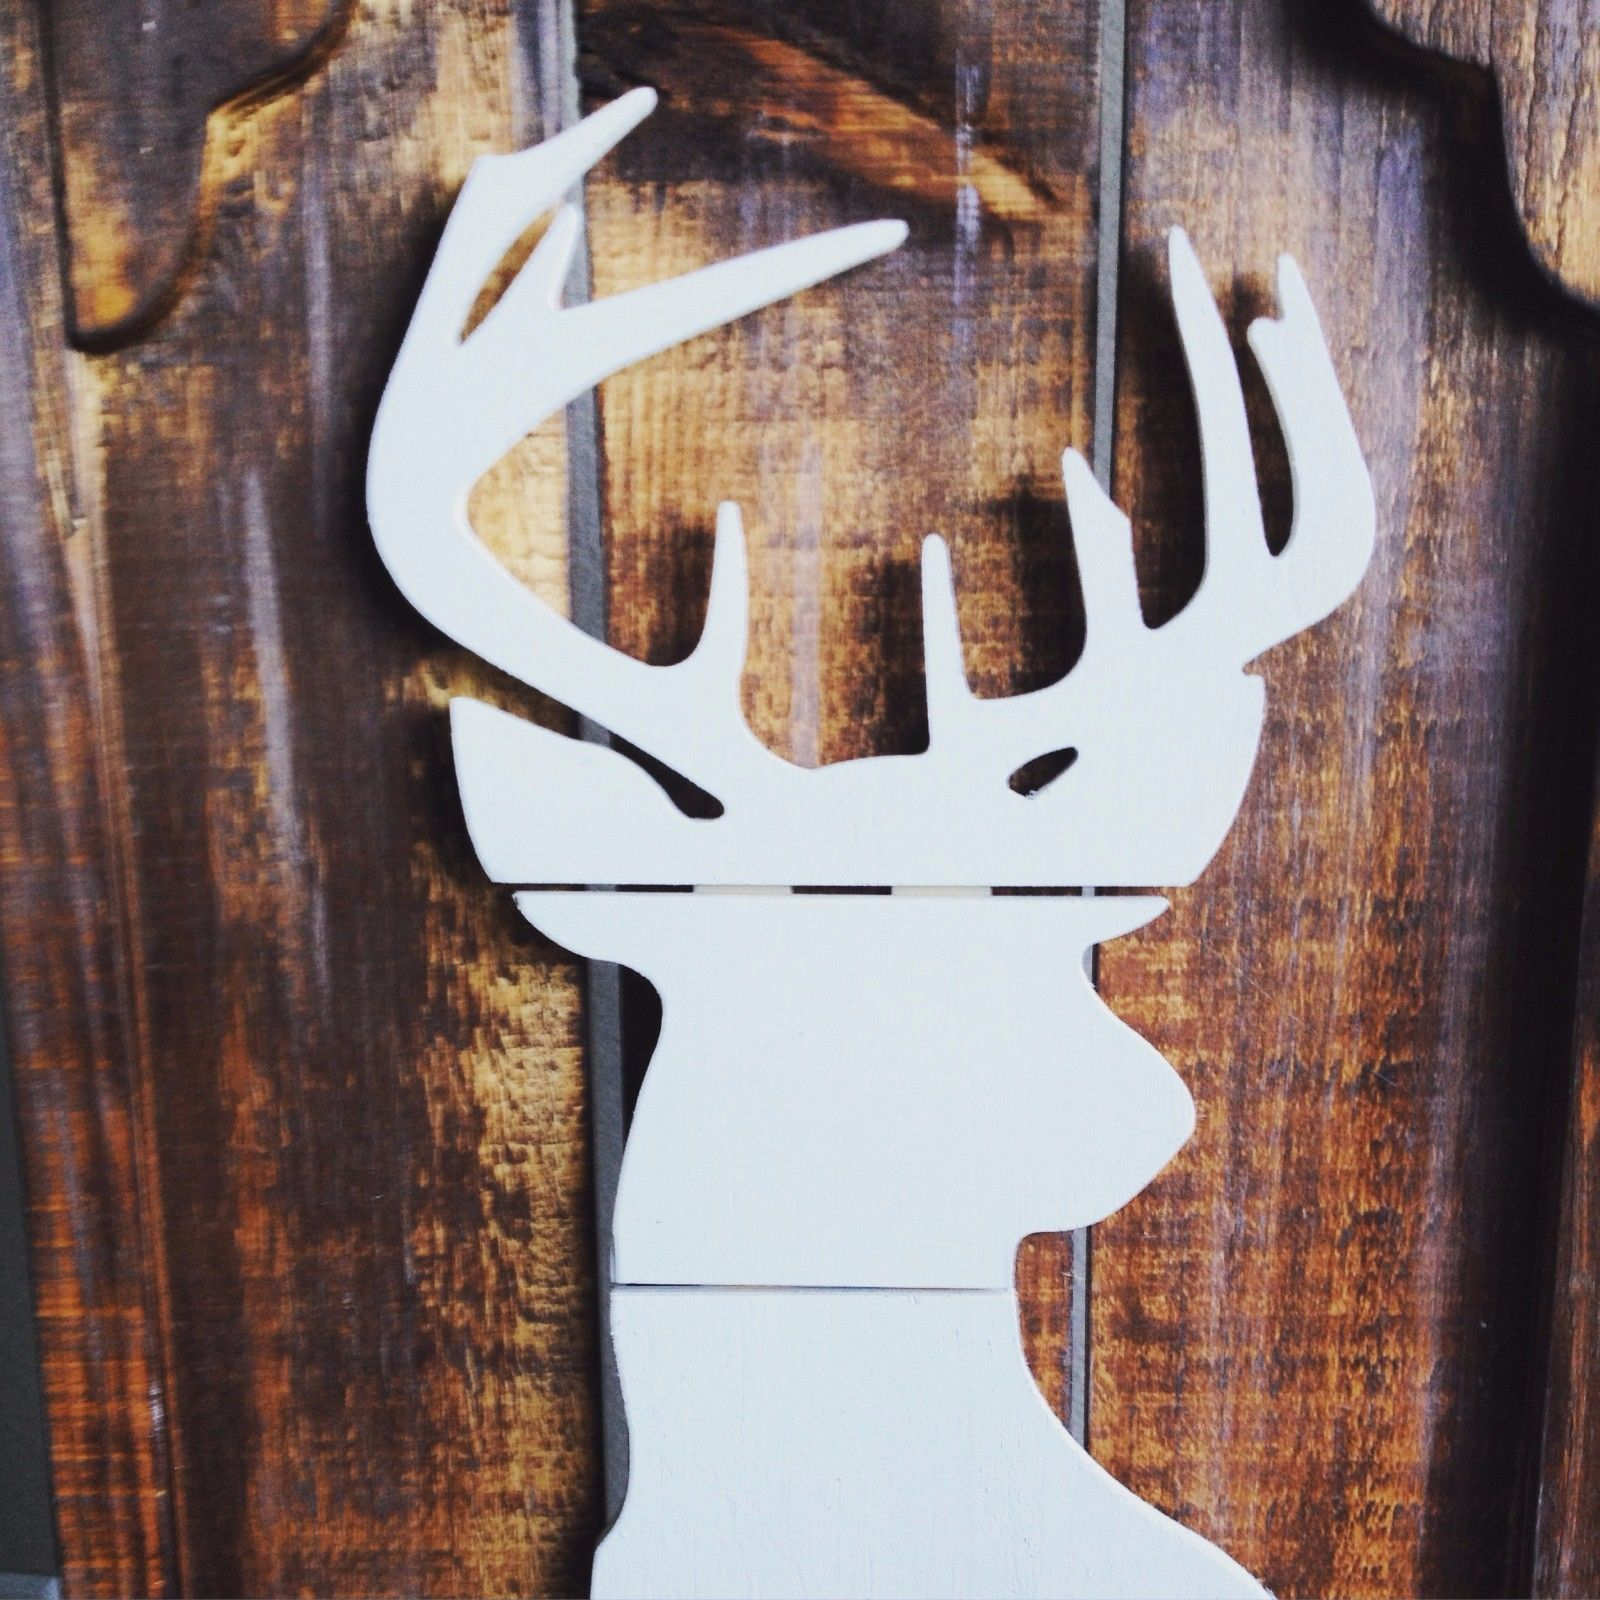 Diy home decor wood  Rustic Home Decor Wooden Sign Deer Head Deer Sign Hunting Decor